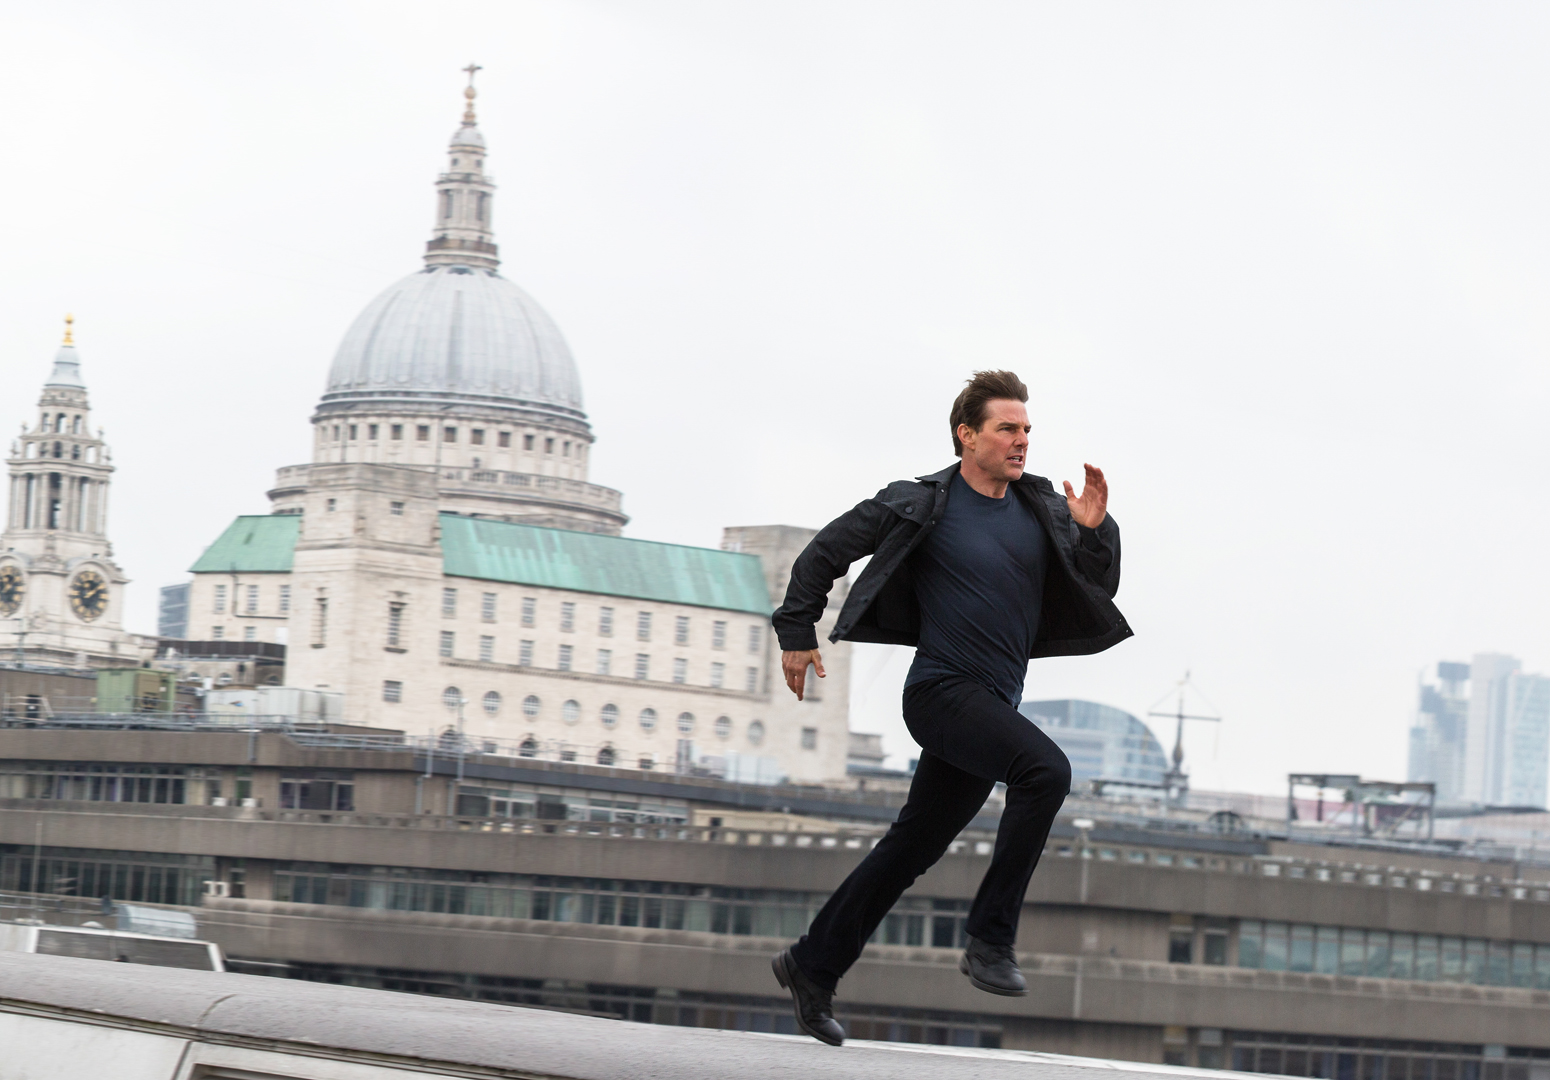 Tom Cruise as Ethan Hunt in MISSION: IMPOSSIBLE - FALLOUT from Paramount Pictures and Skydance.